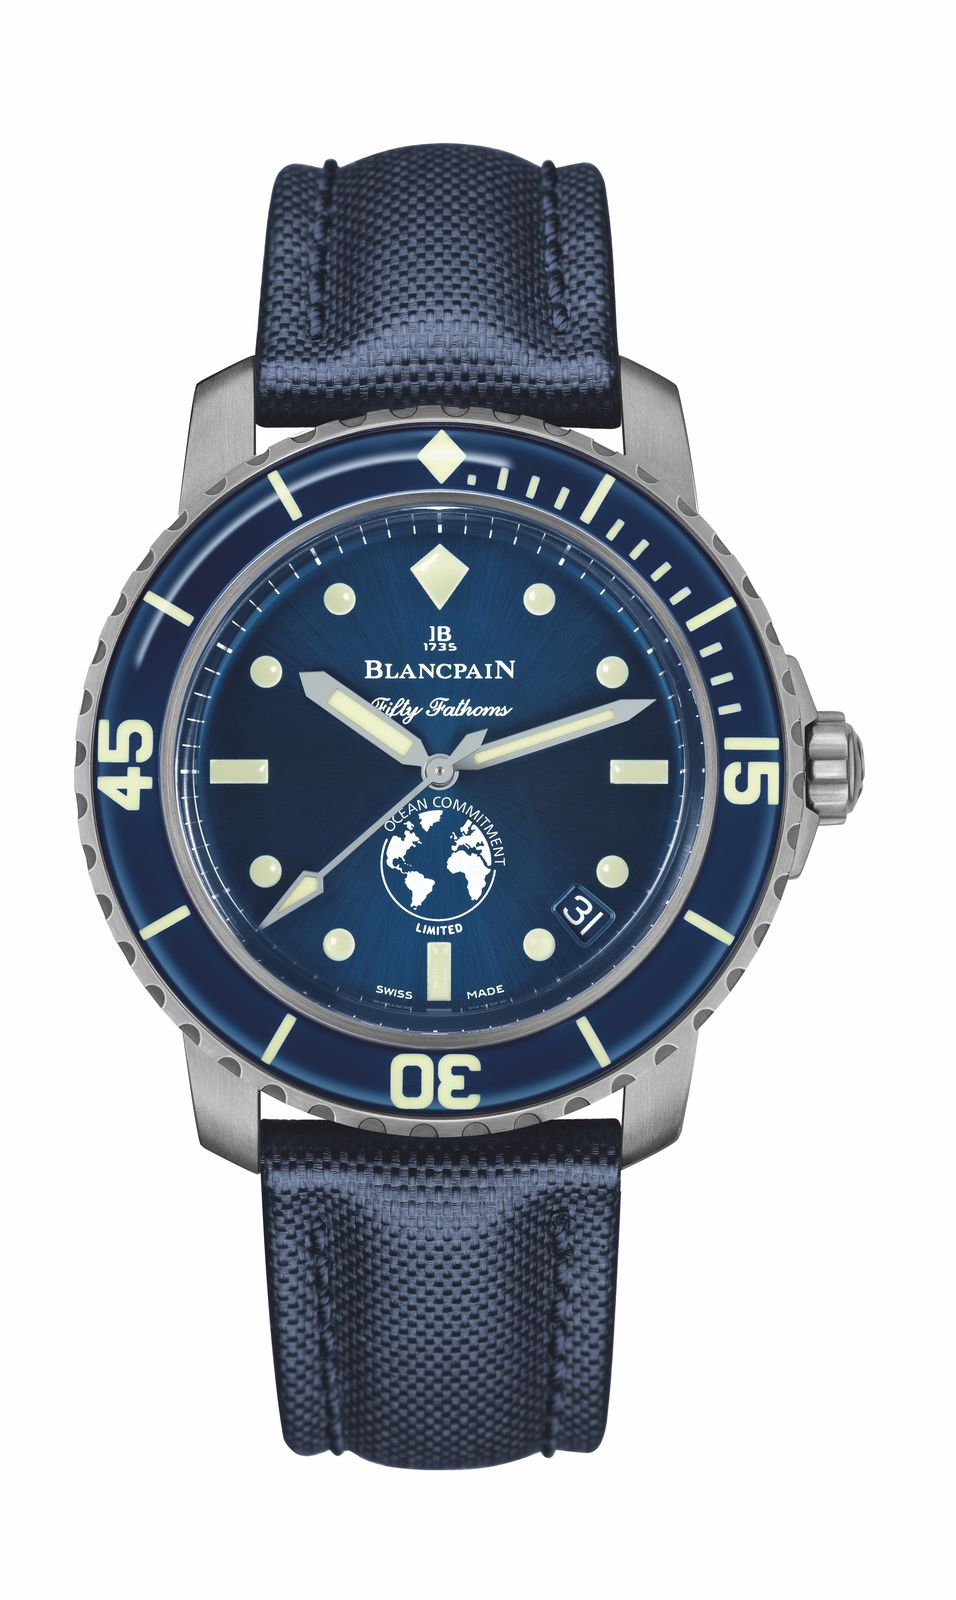 The limited edition Blancpain Ocean Commitment III timepiece. (Photo: Blancpain)